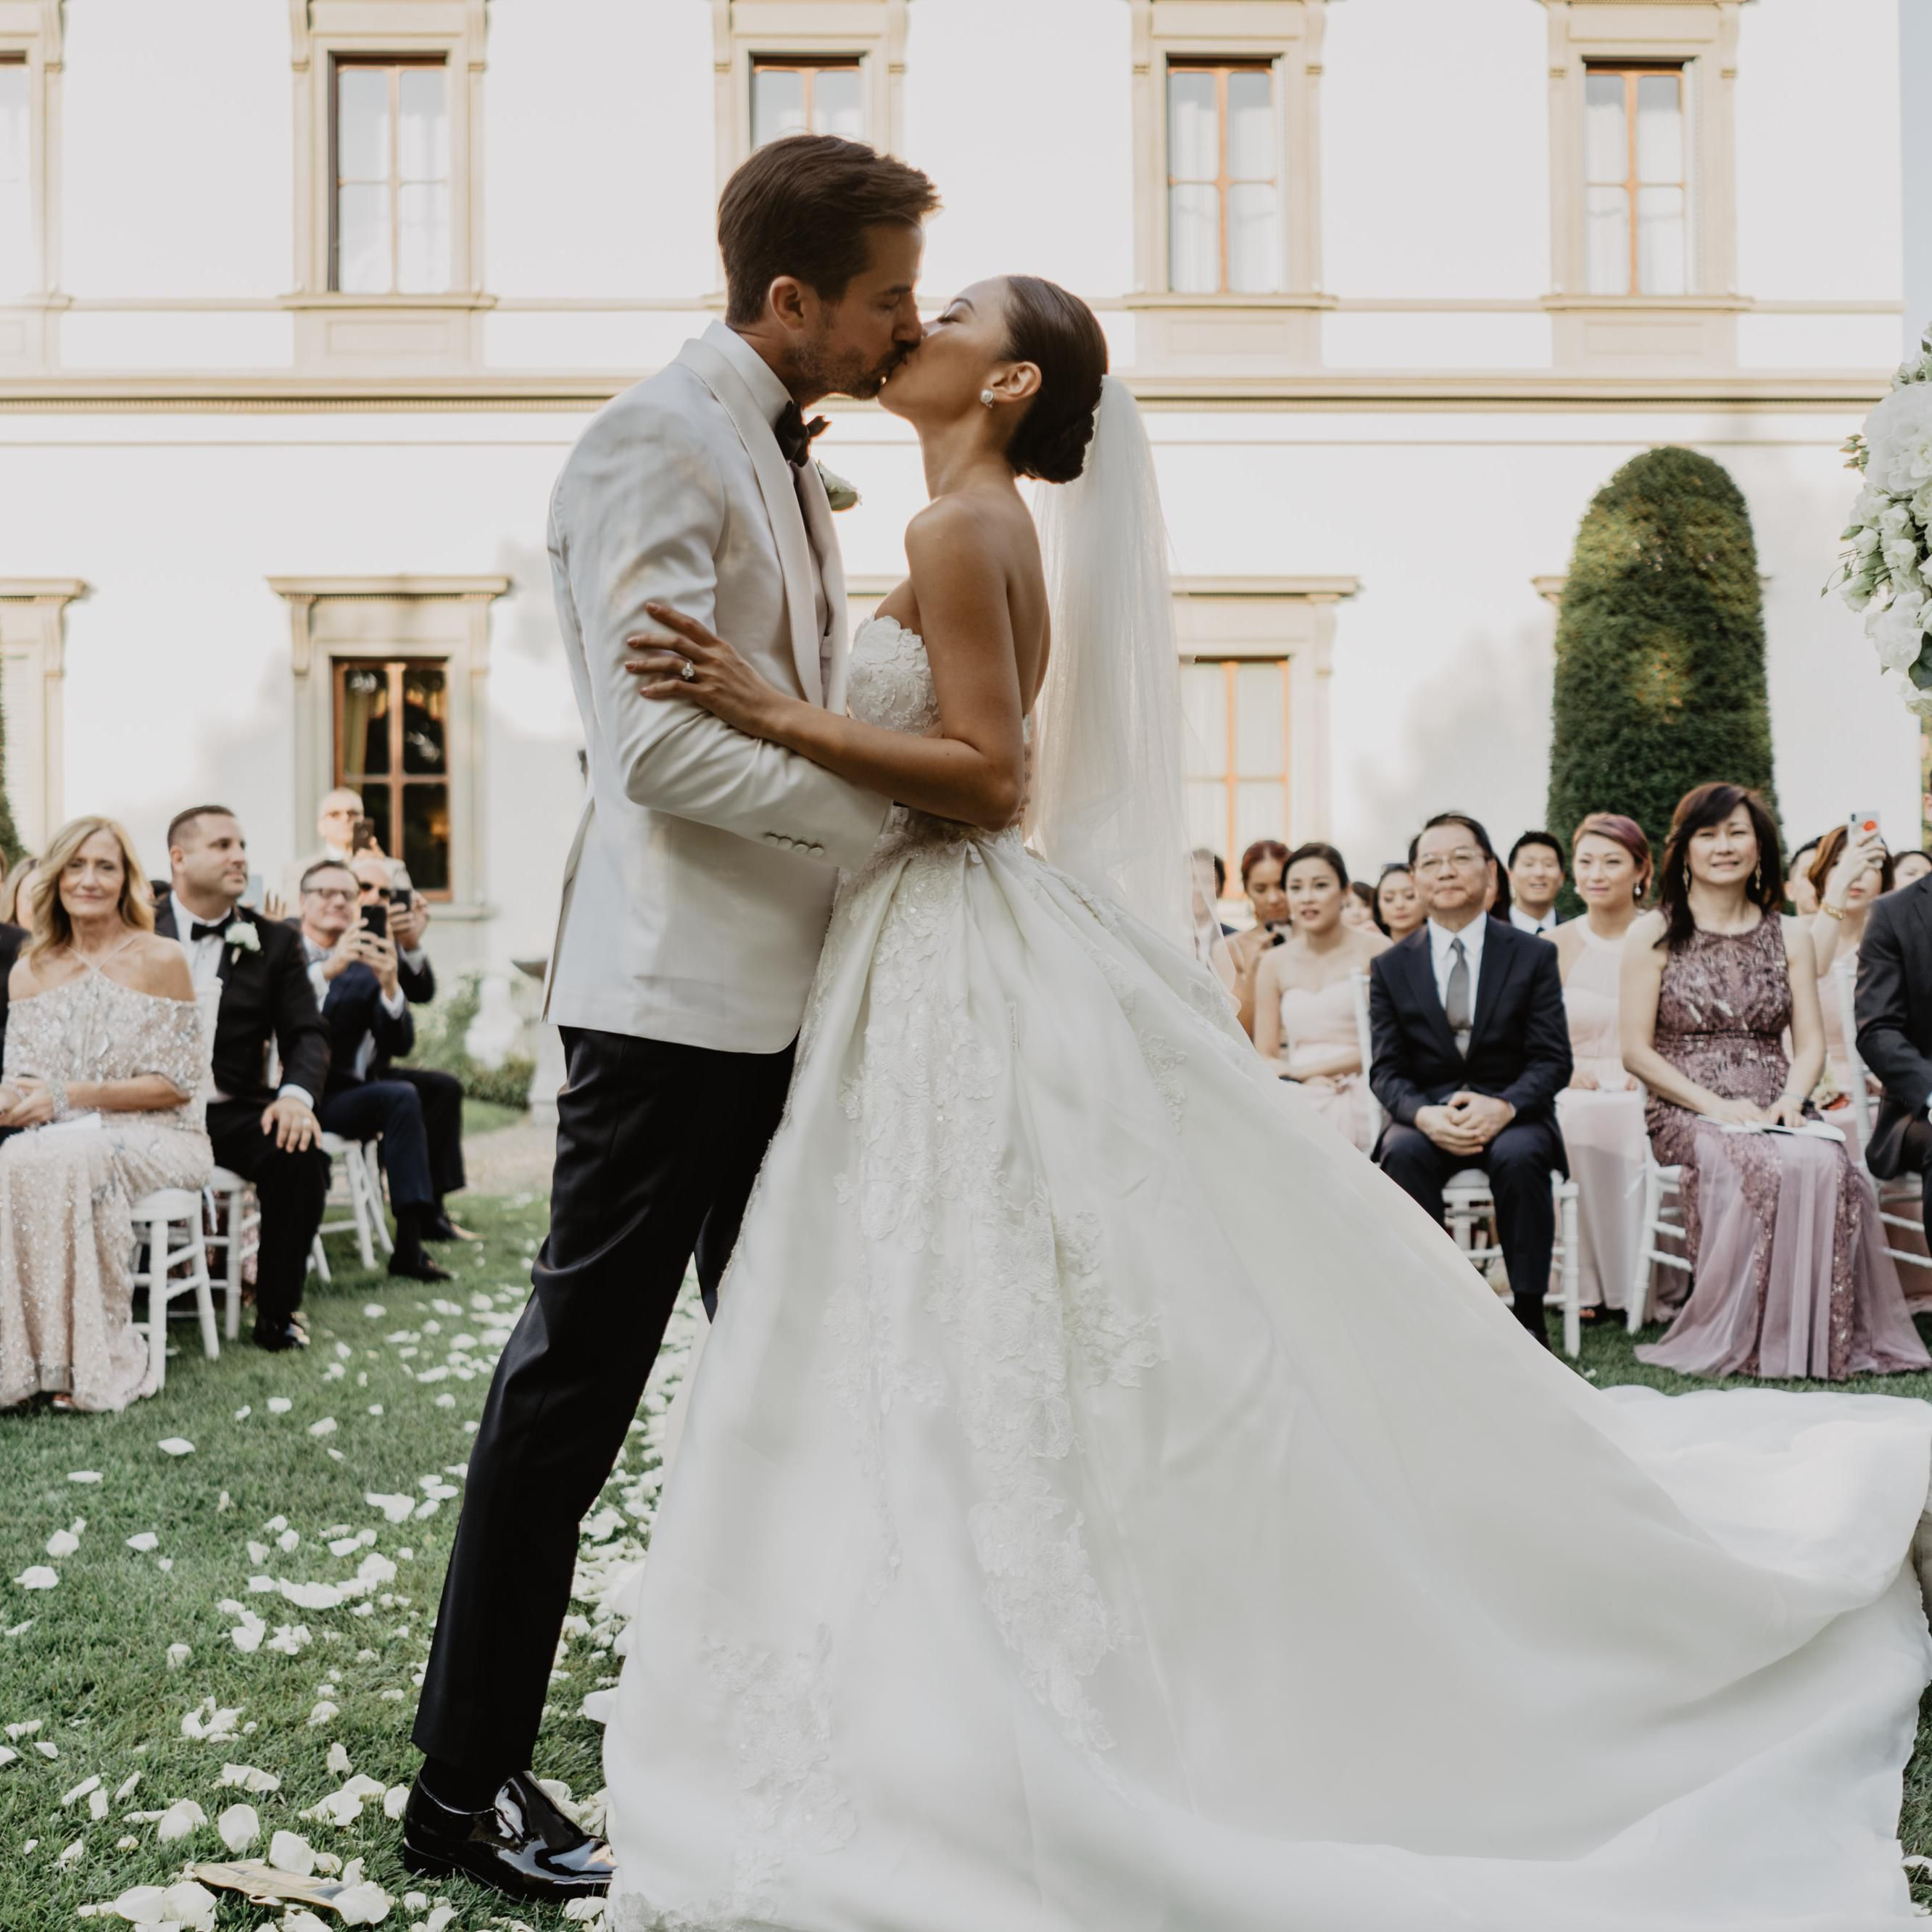 A Grand Multi Day Wedding With An Intimate Guest List In Florence